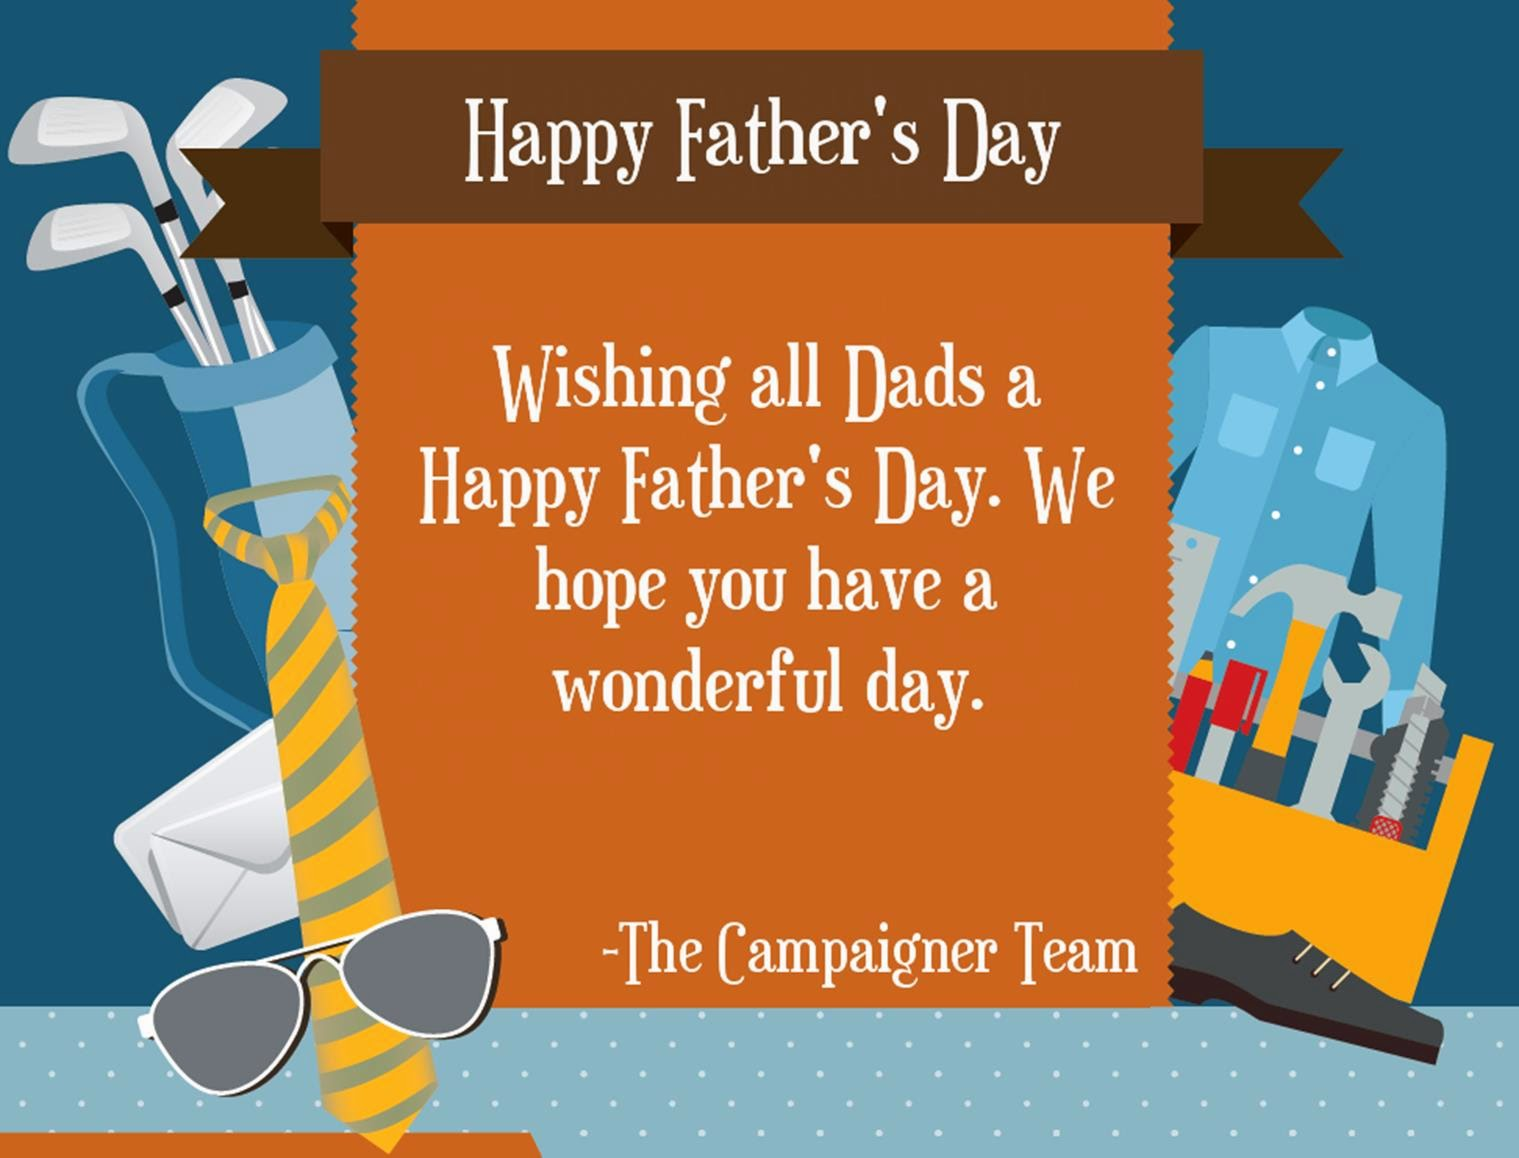 Happy Father's Day from Campaigner Email Marketing